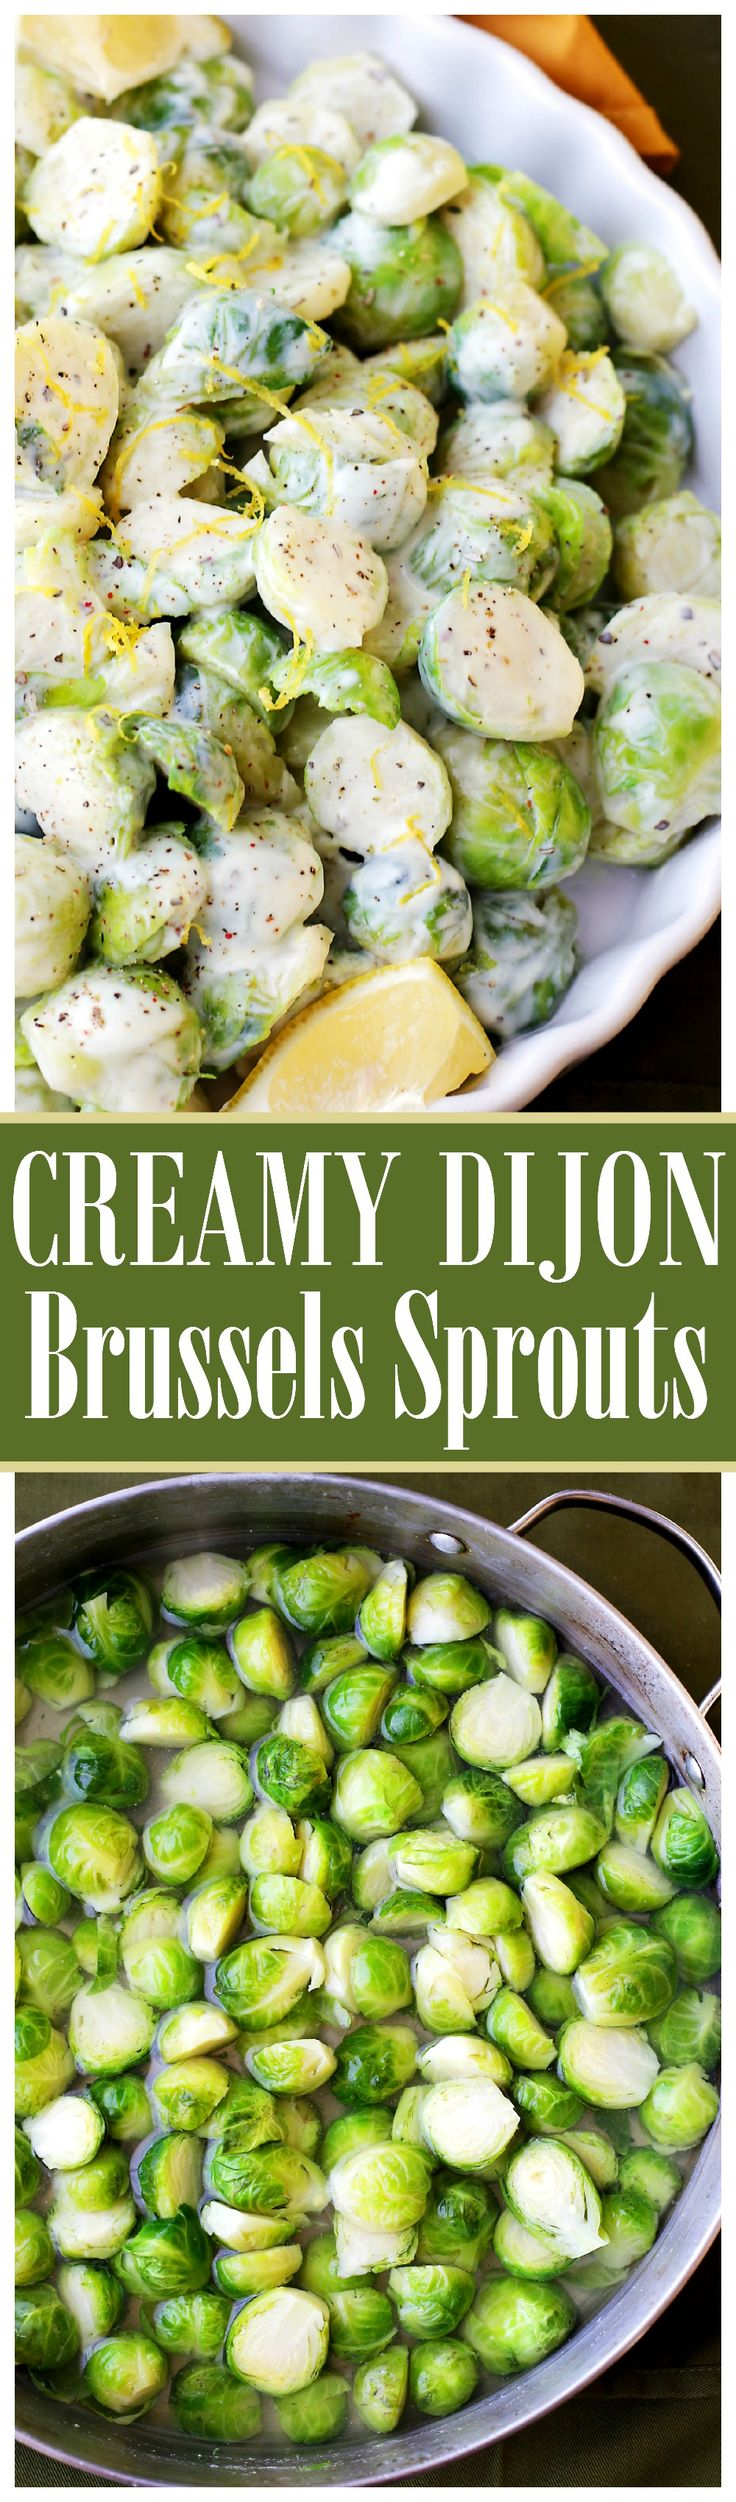 Creamy Dijon Brussels Sprouts - Quick, easy, and a simply delicious side dish with Brussels Sprouts tossed in a creamy, citrusy, dijon sauce.